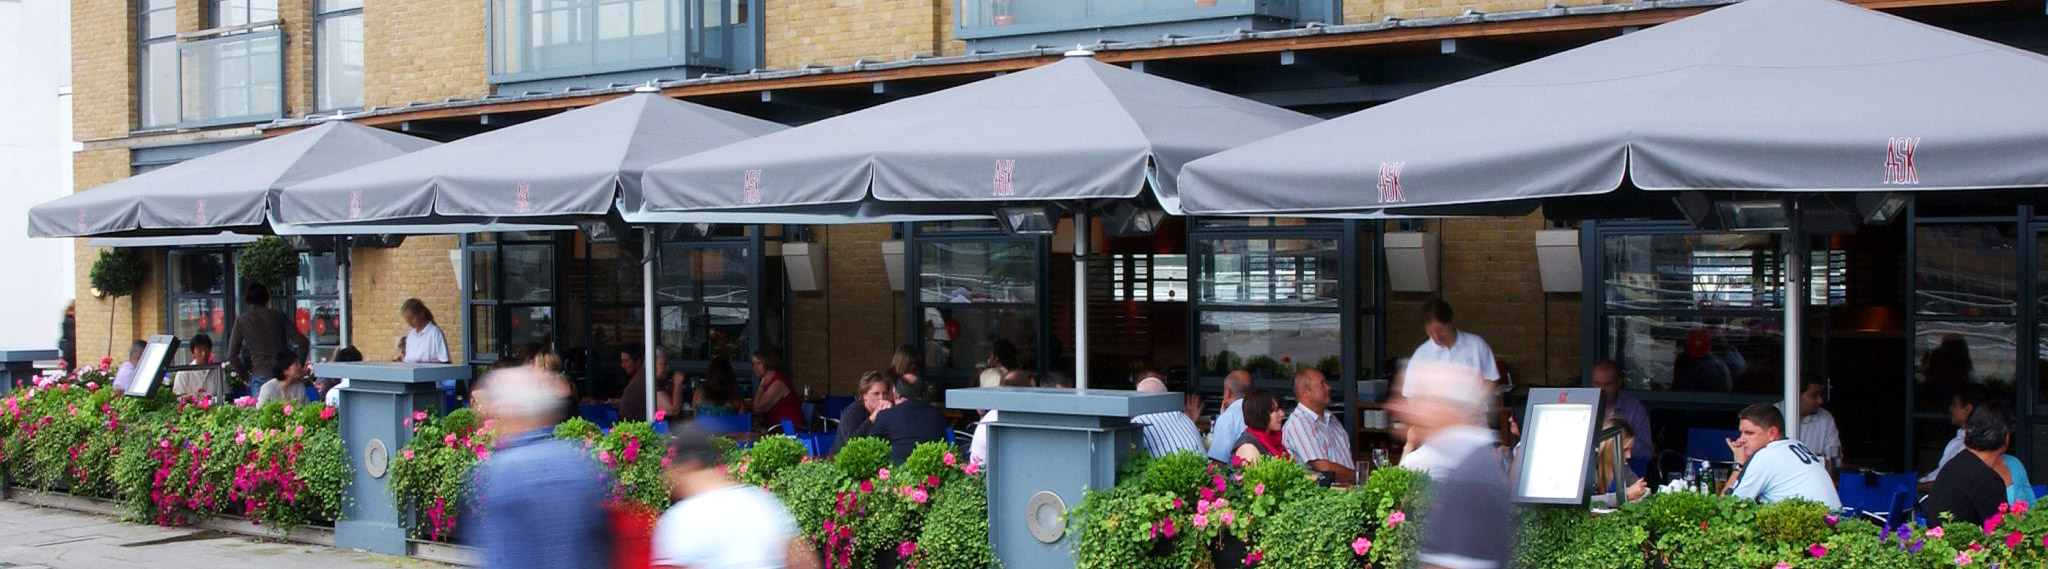 Butlers Wharf Parasols